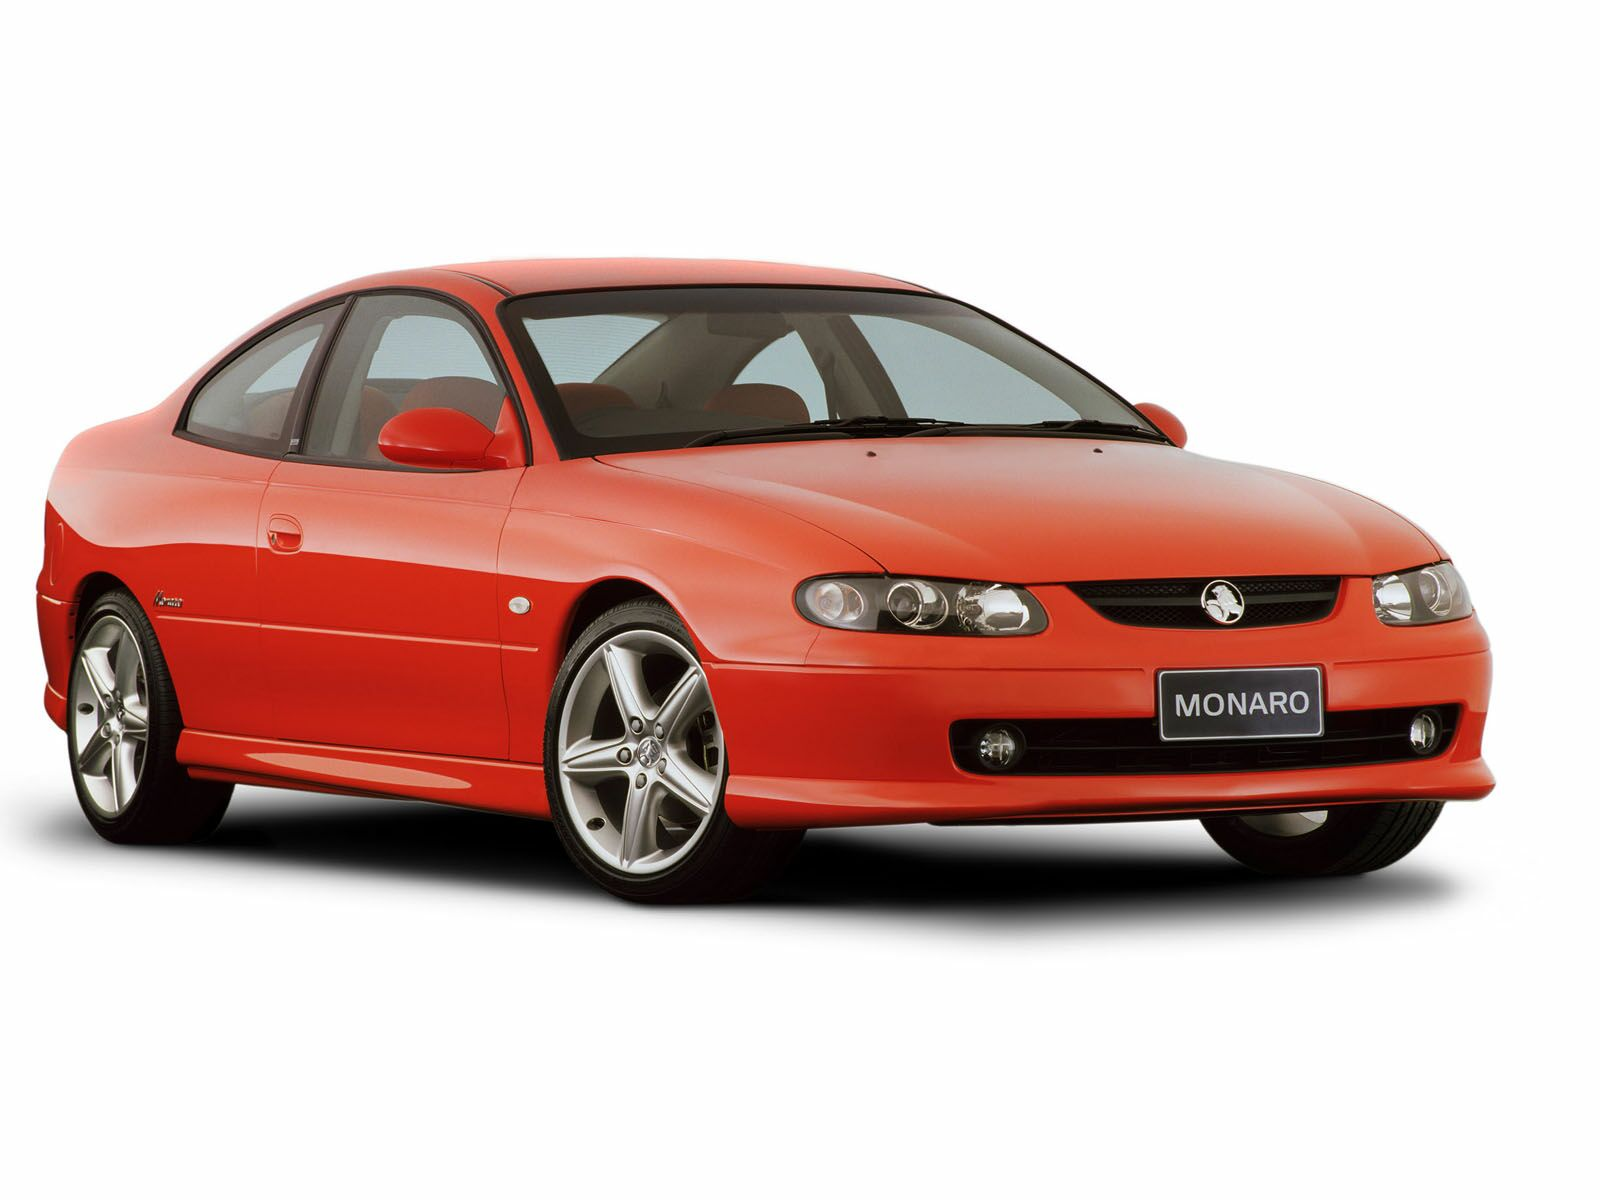 Car Pictures: Holden Monaro 2004